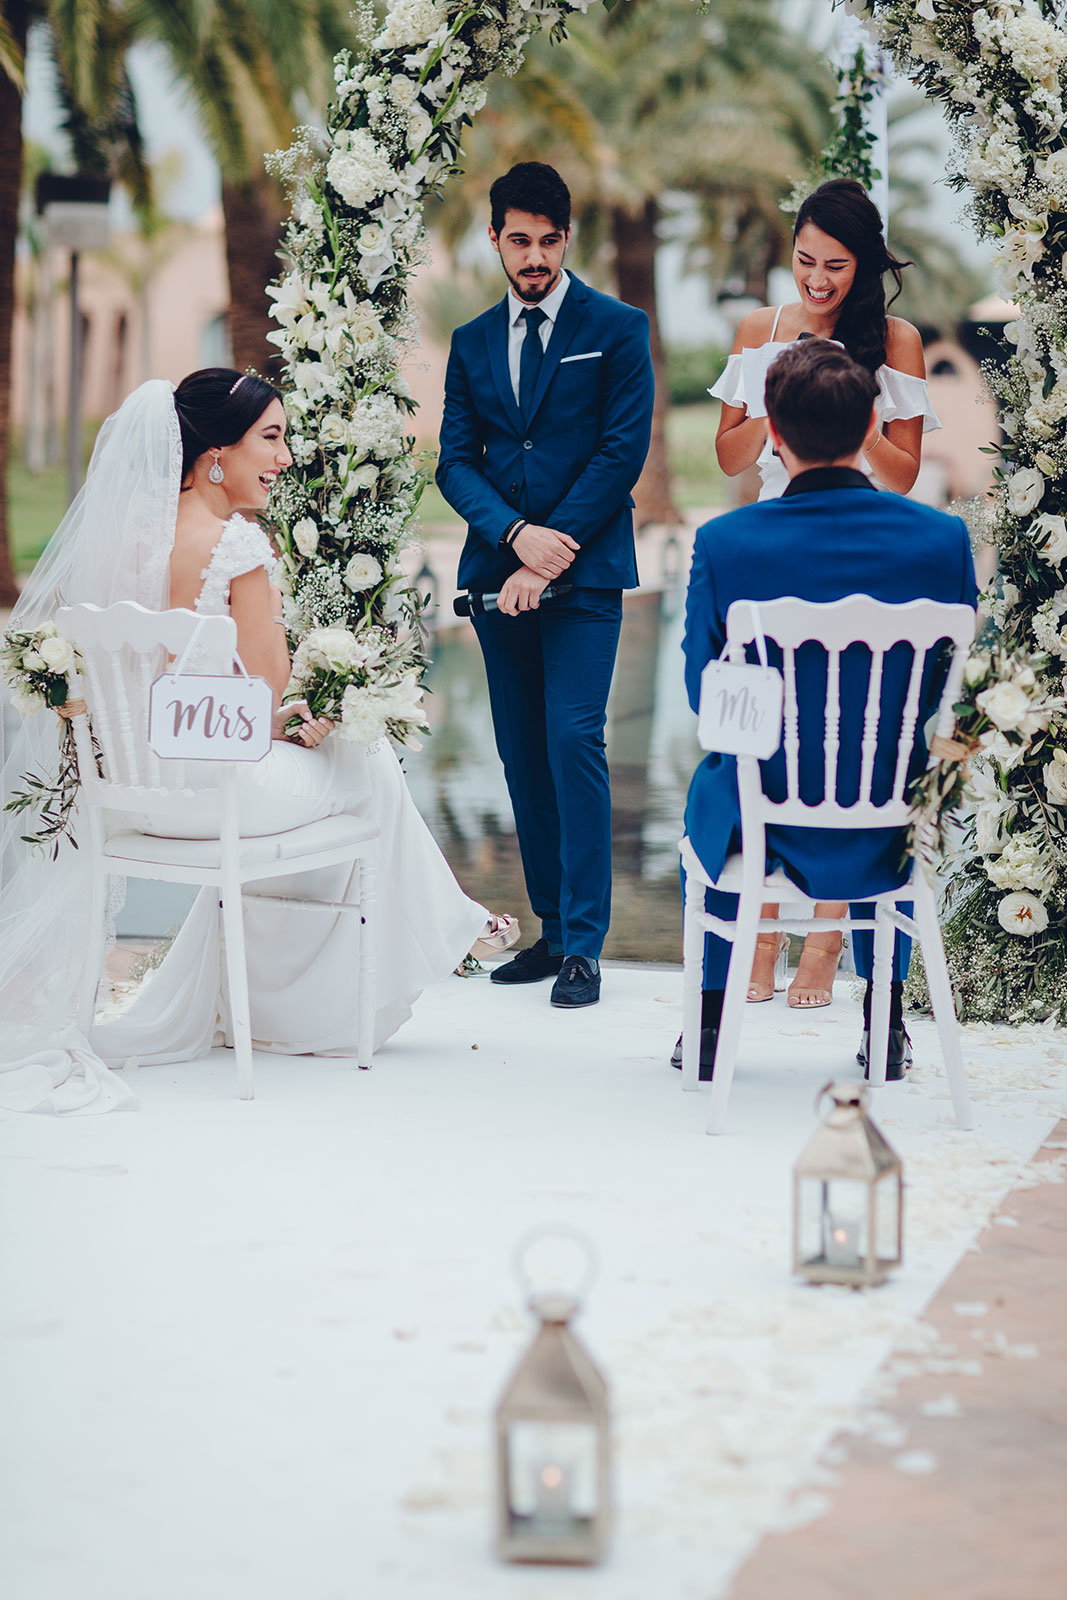 Wedding photographer in Marrakech, Private Villa Morocco, destination wedding with Houda and Sebastien © Ettore Franceschi